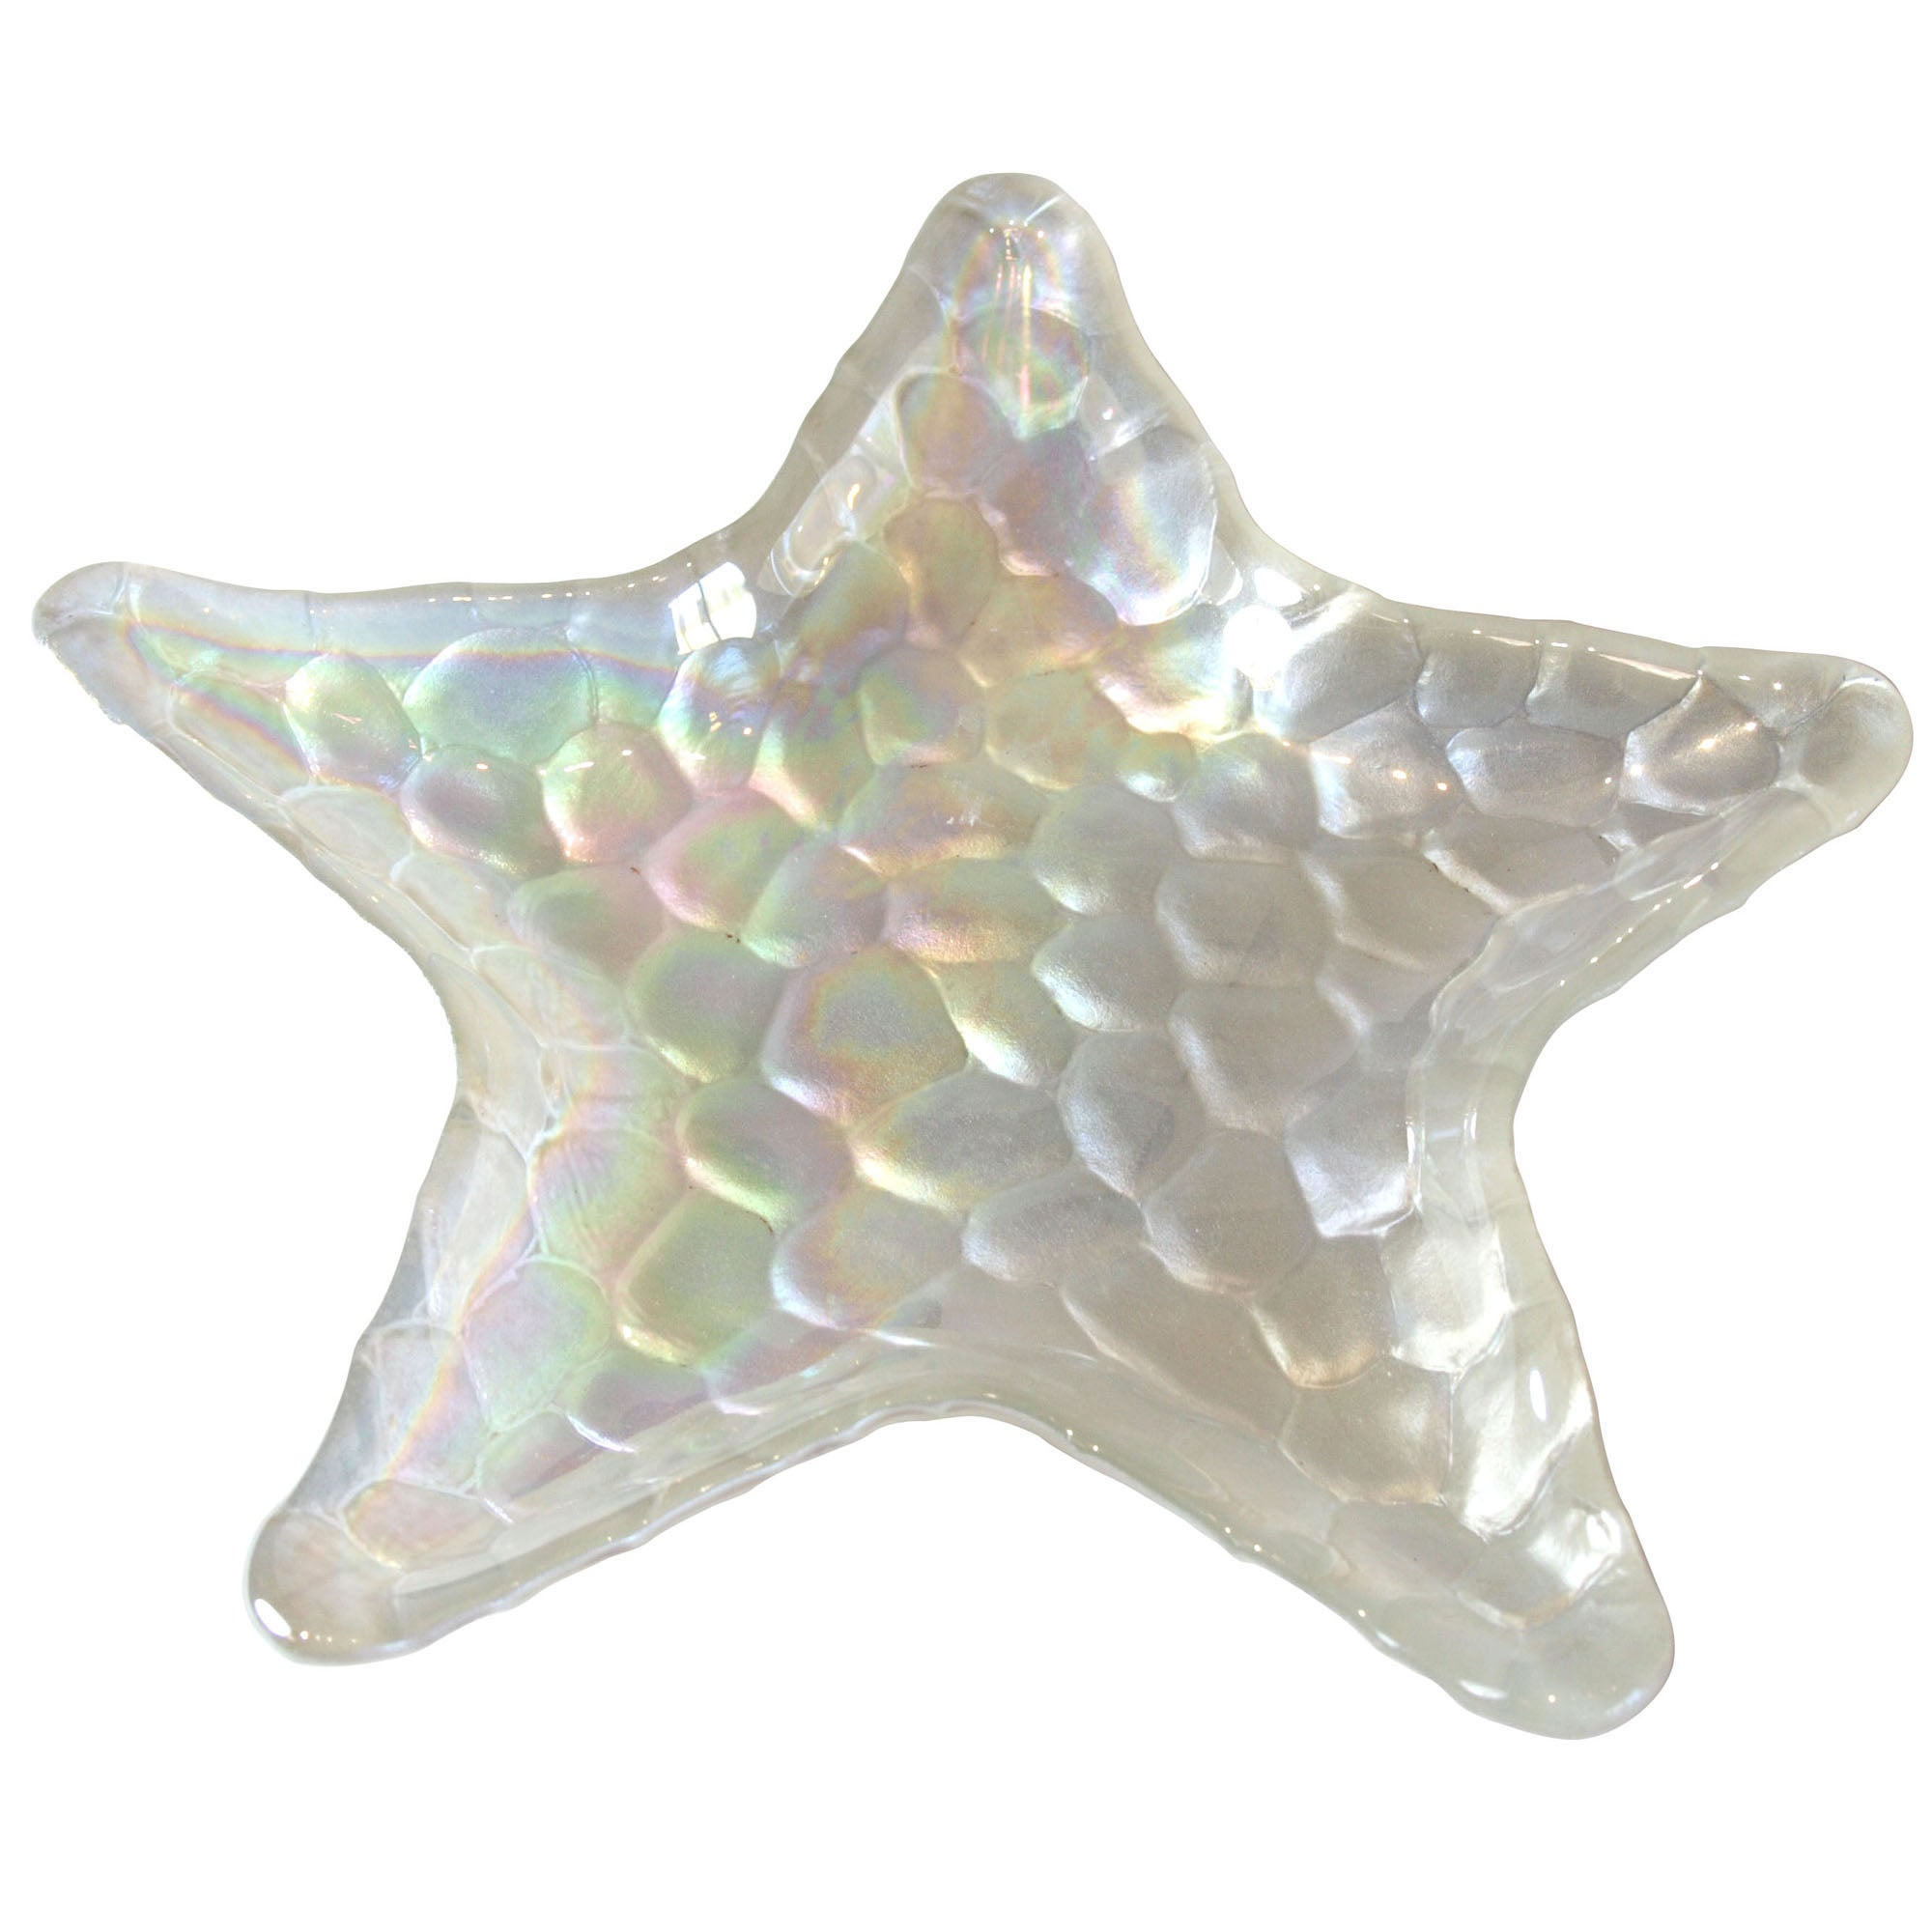 Coastal Collection Pearlised Starfish Dish